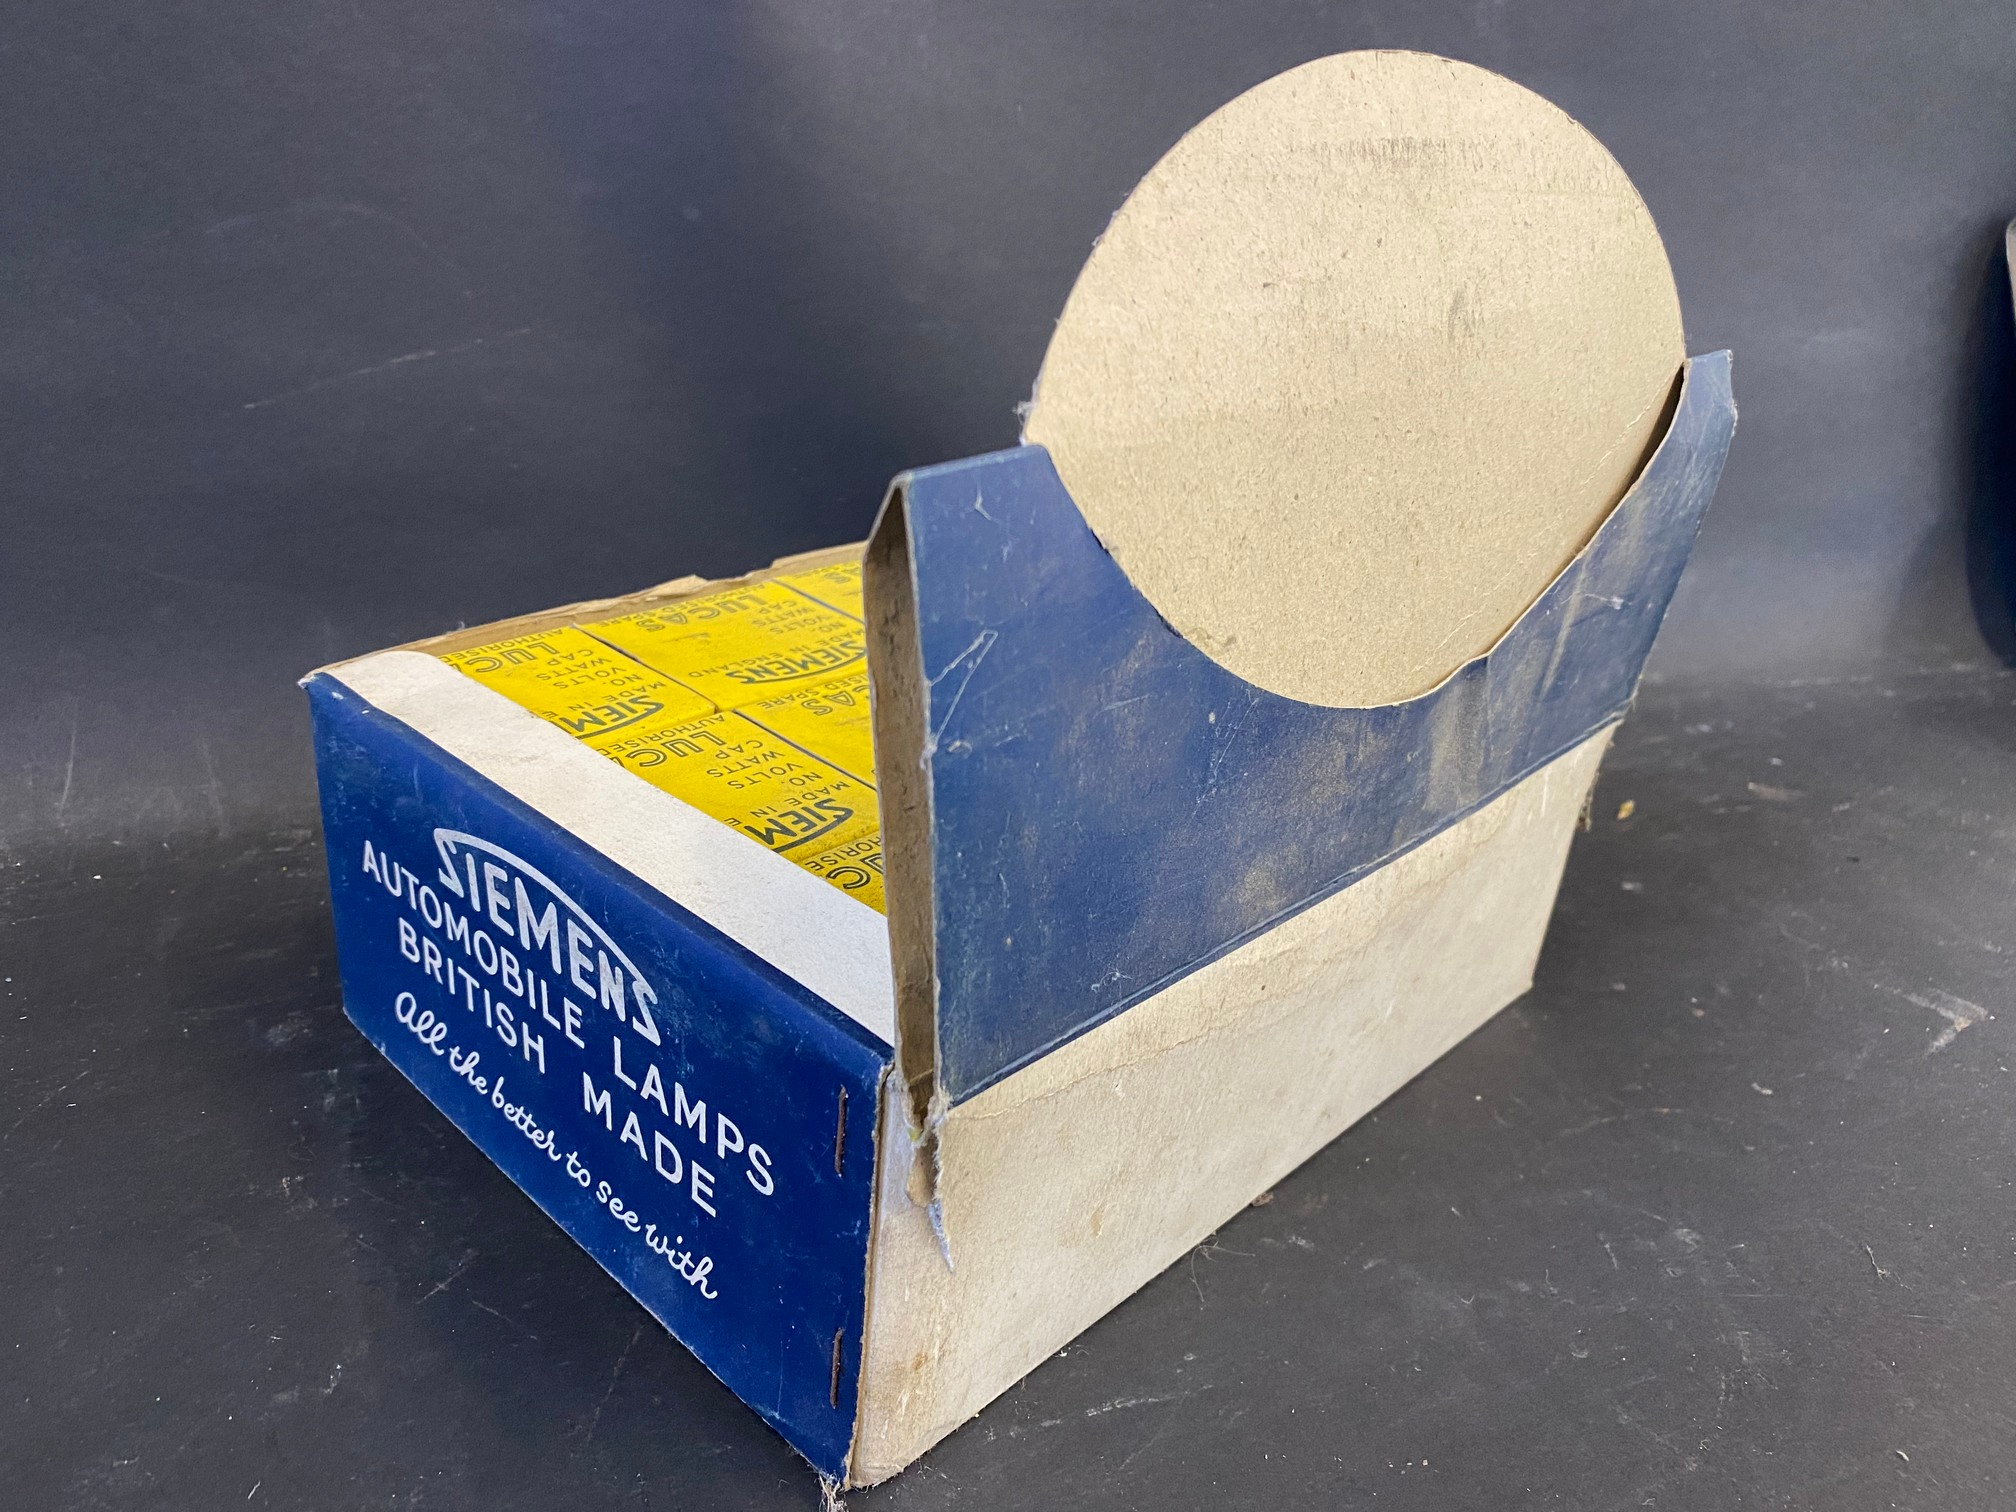 A counter top dispensing box for Siemens Automobile Lamps. - Image 2 of 2